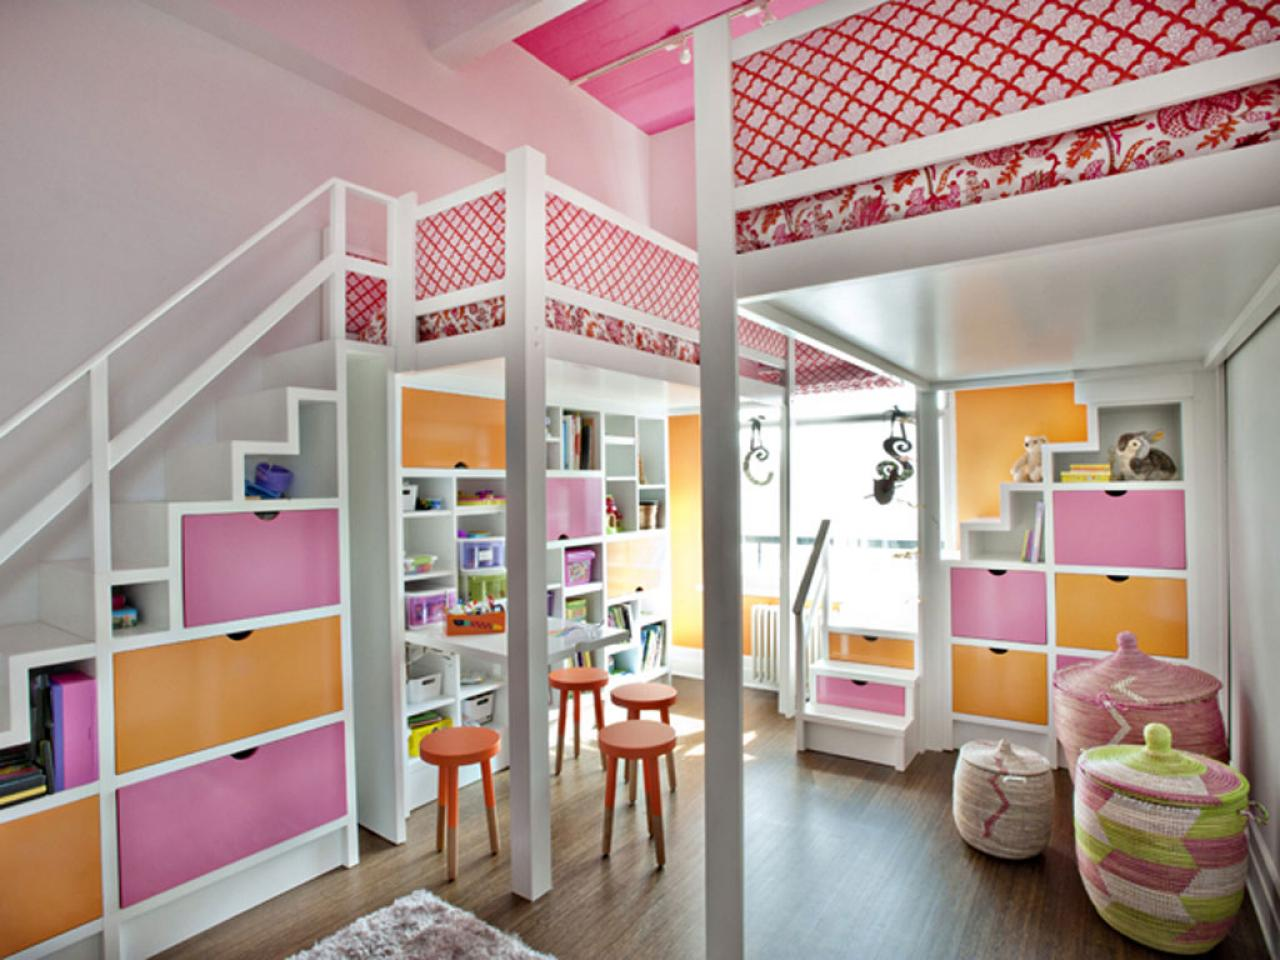 10 beds that look good and have killer storage too hgtv 4 beds in one room